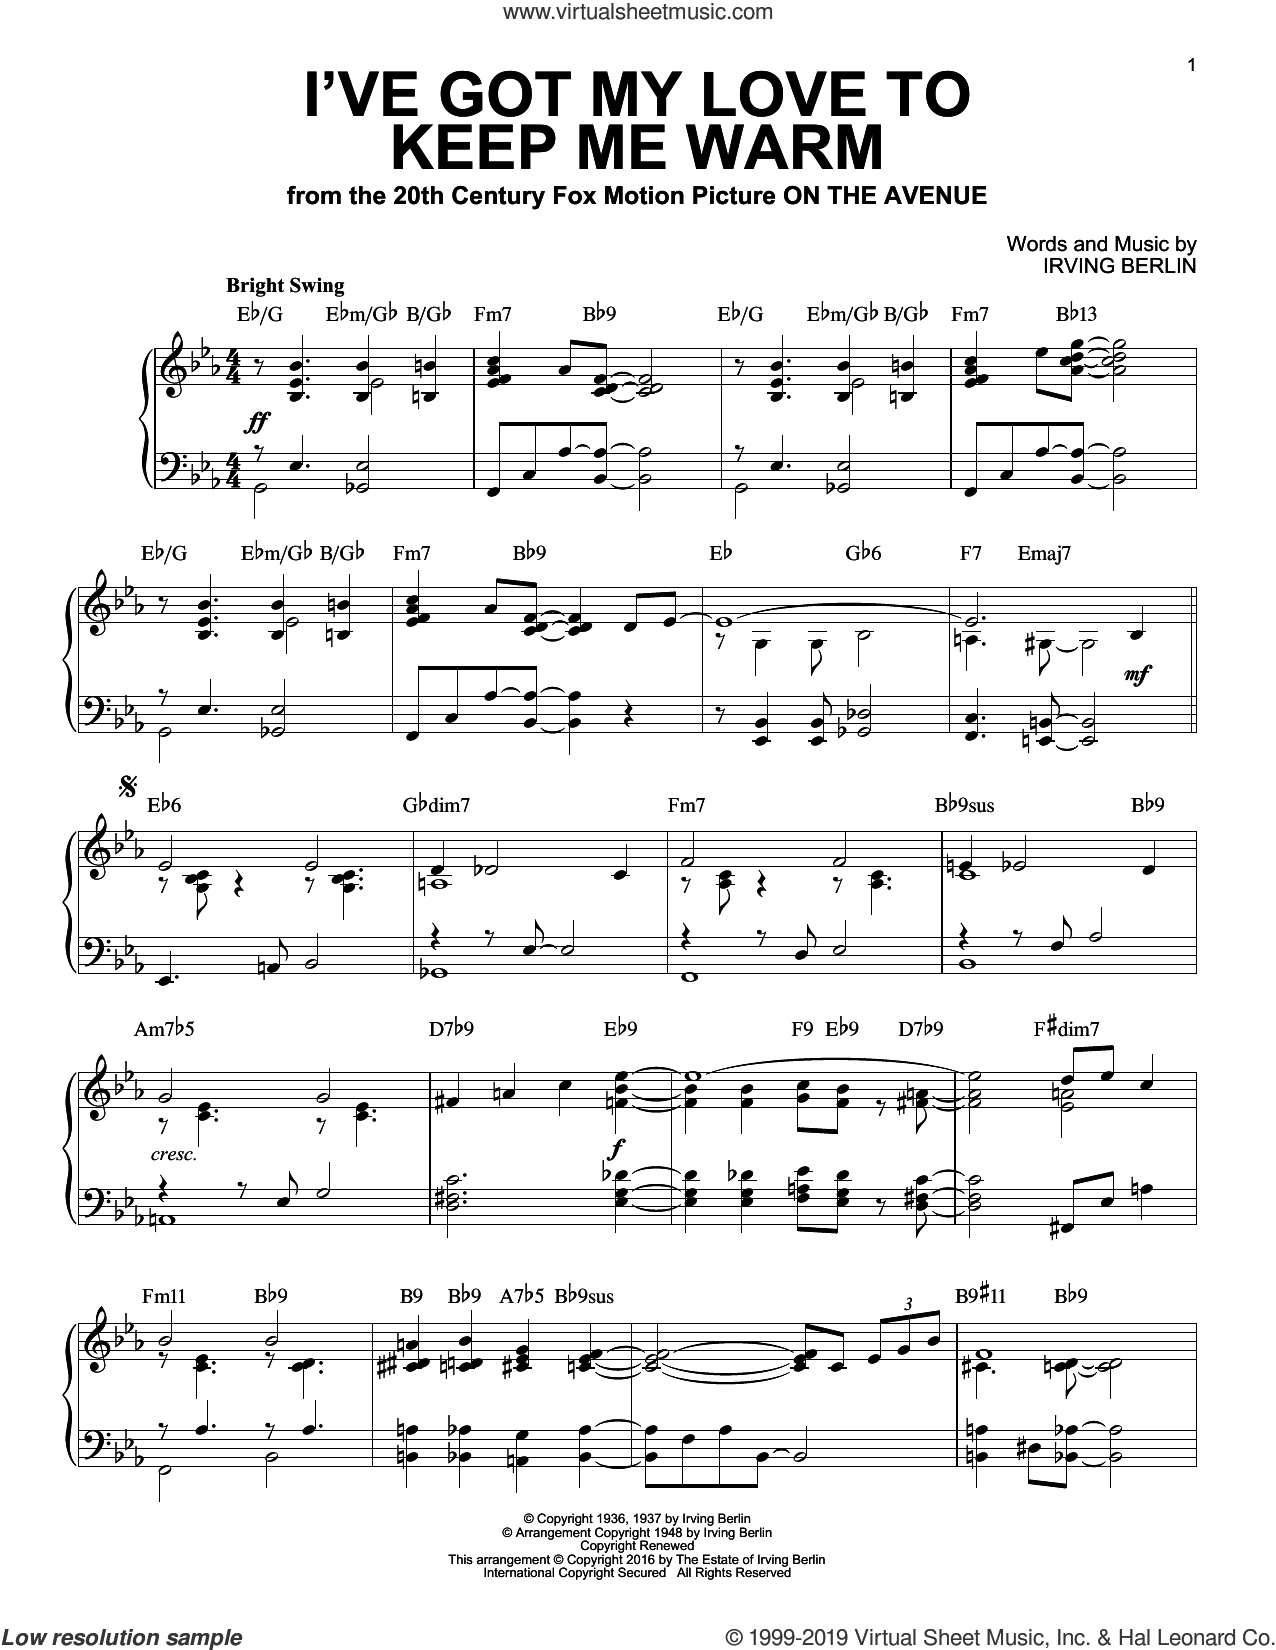 I've Got My Love To Keep Me Warm [Jazz version] (arr. Brent Edstrom) sheet music for piano solo by Irving Berlin and Benny Goodman, intermediate skill level